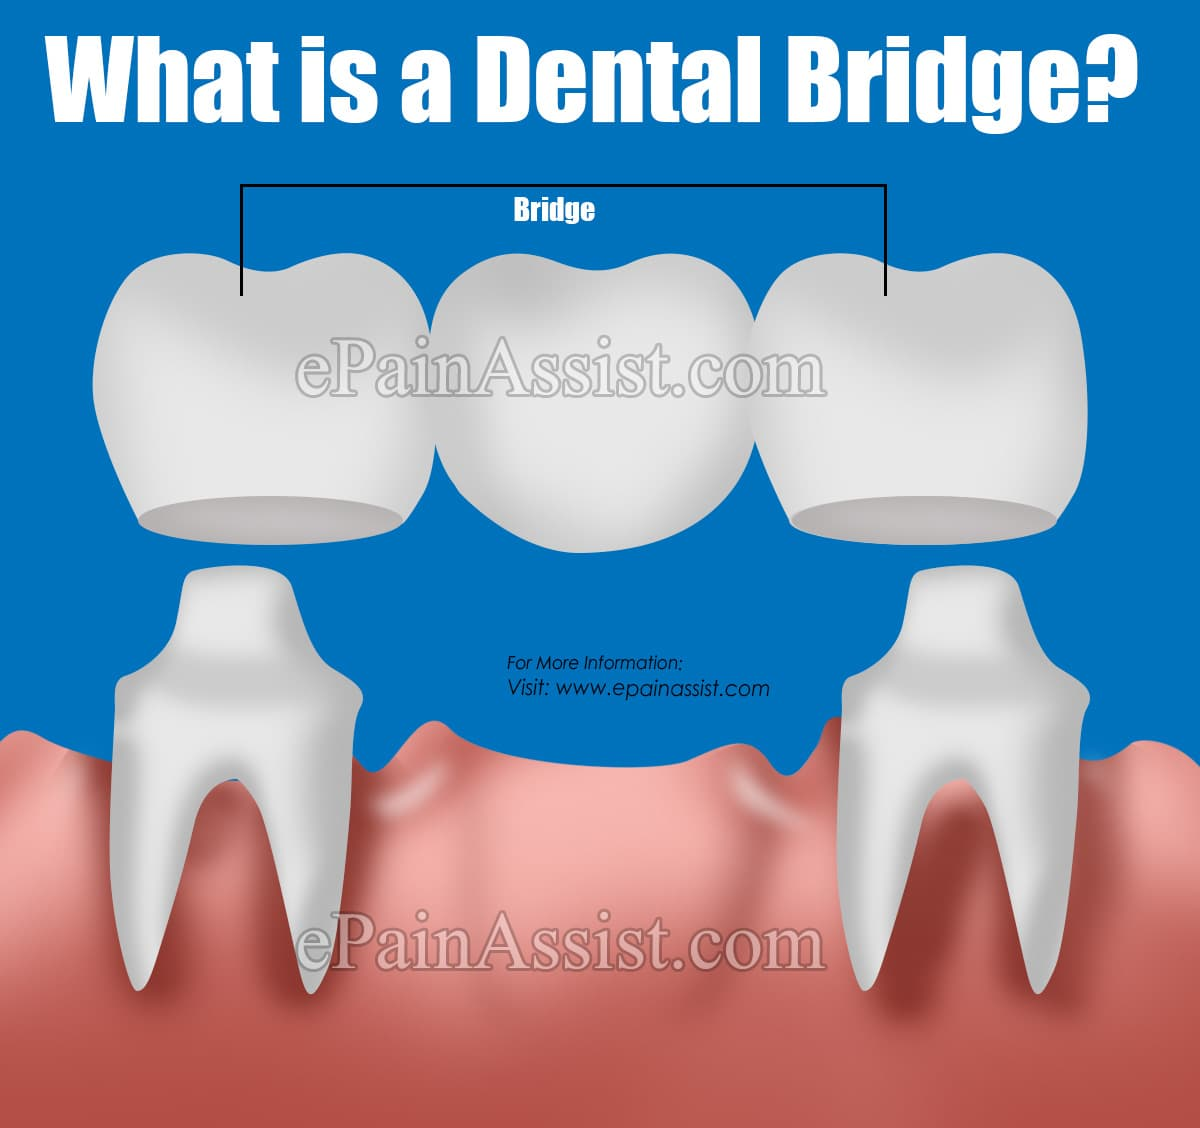 What is a Dental Bridge?